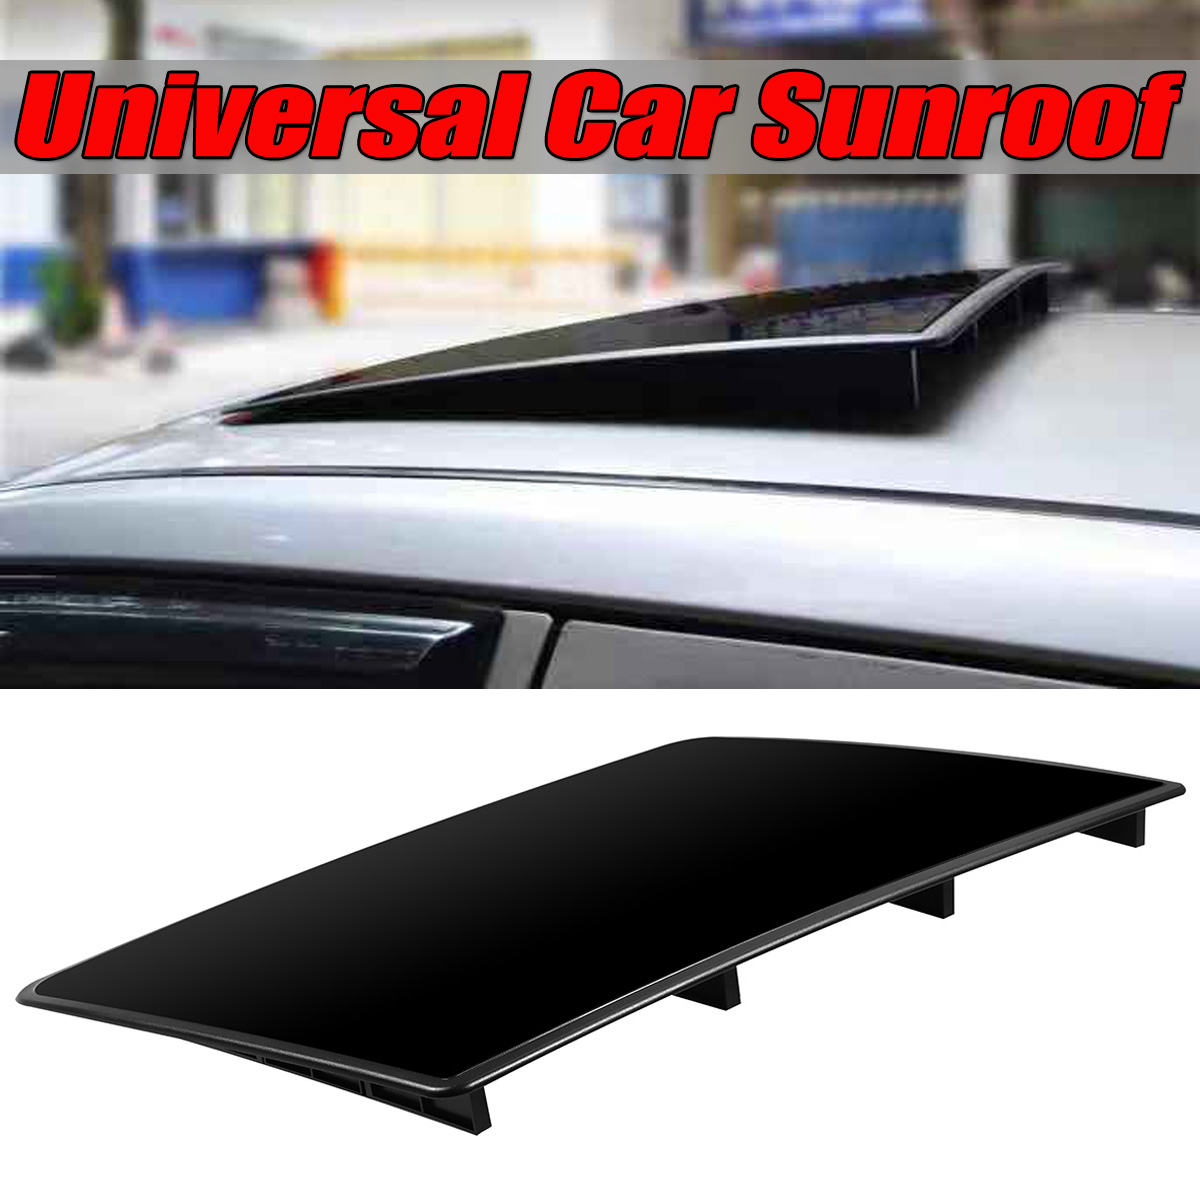 1x Universal Car Sunroof Cover Imitation Sunroof Roof Sunroof DIY Decoration For Benz For BMW For Audi For Honda For Mazad